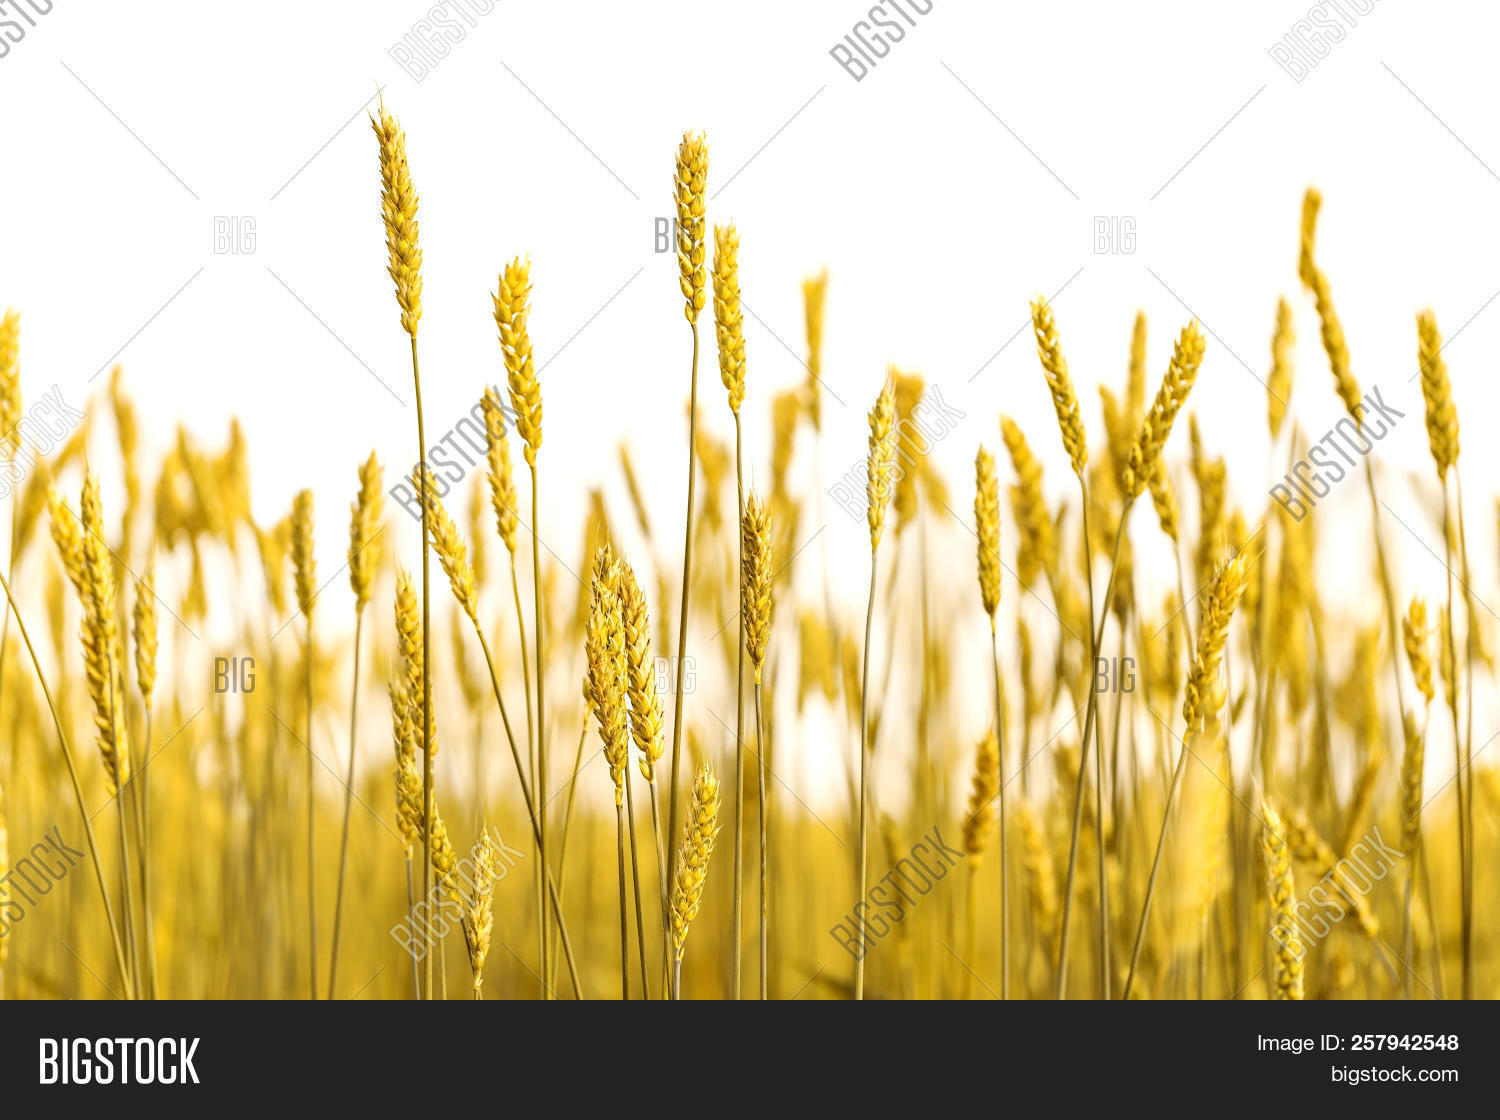 Ears Gold Wheat On Image & Photo (Free Trial) | Bigstock